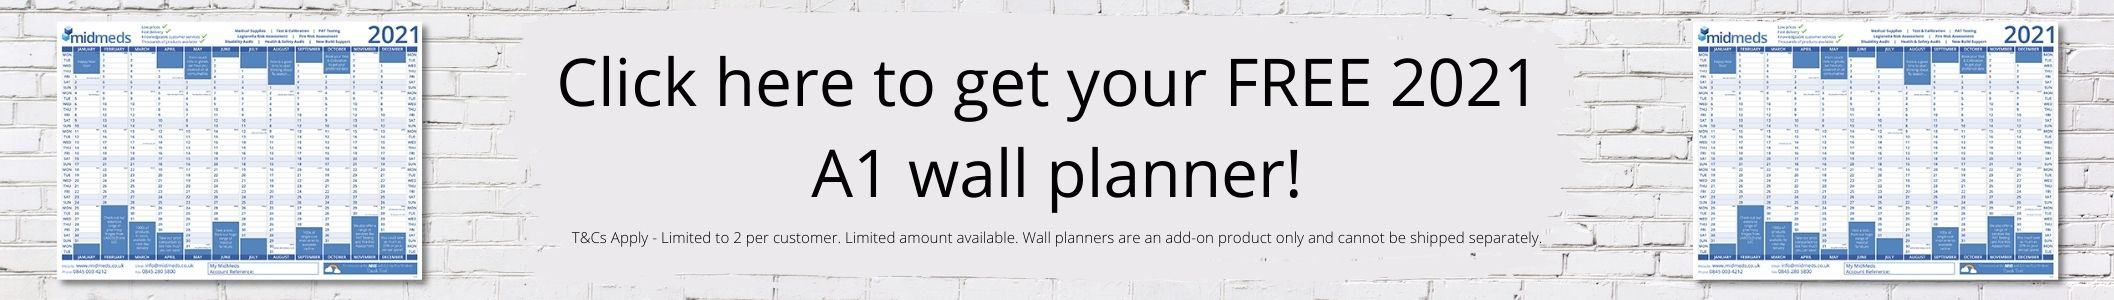 Free Wall Planner Banner 2021